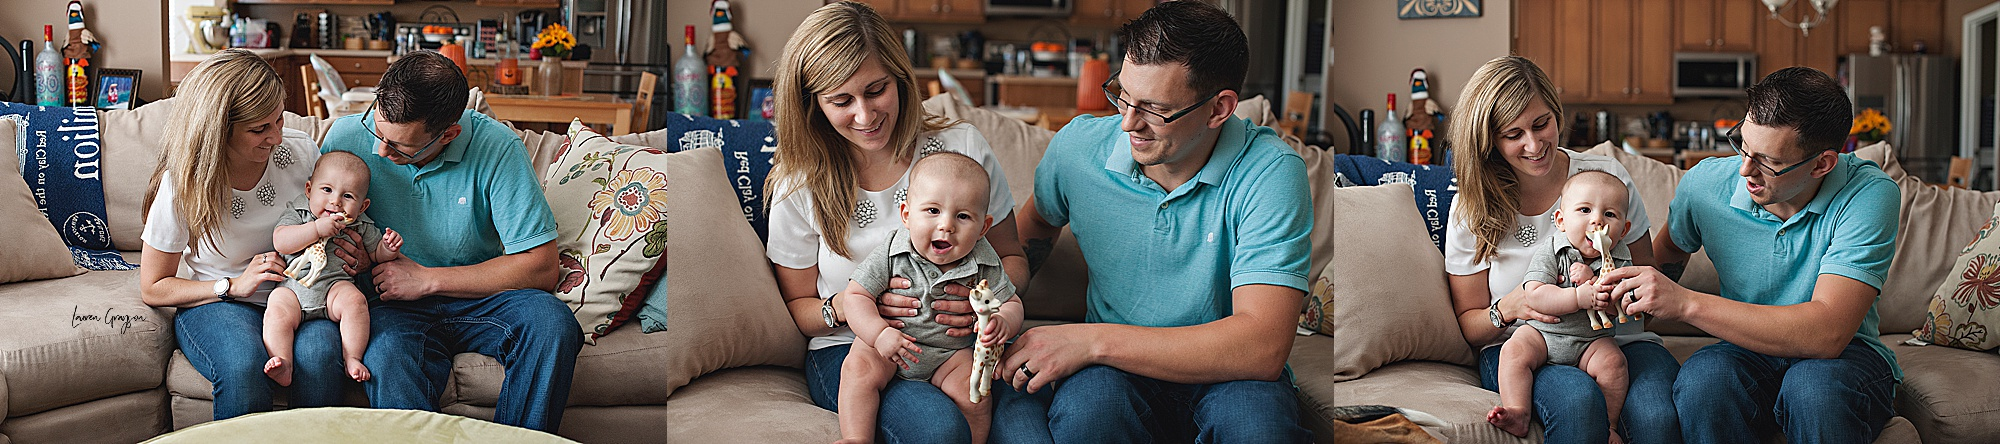 lauren-grayson-photography-cleveland-ohio-family-session-lifestyle-in-home_0013.jpg